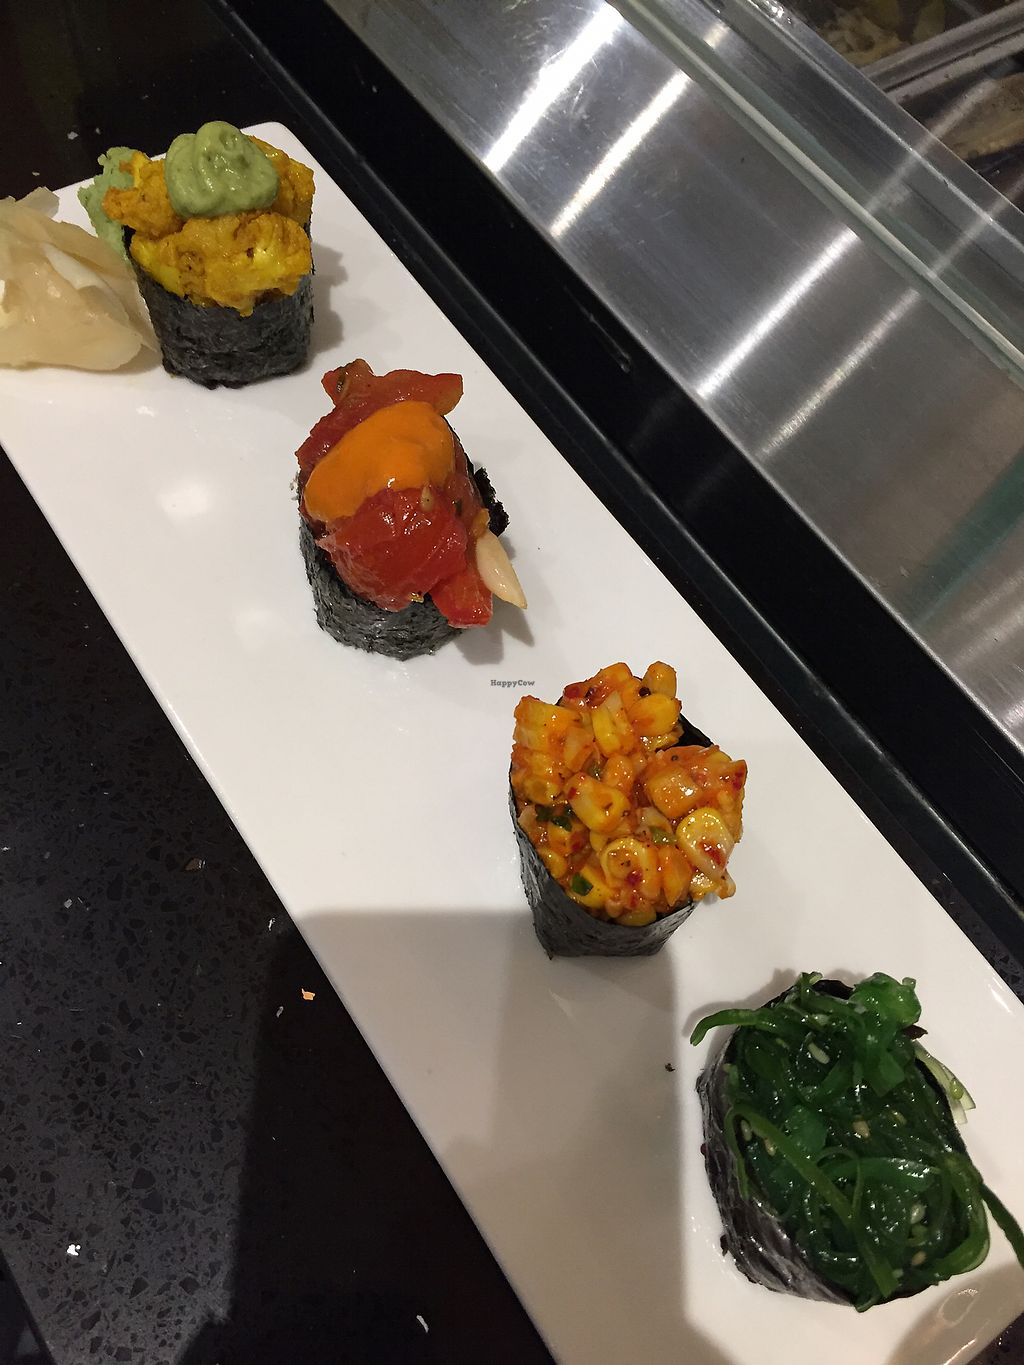 """Photo of Beyond Sushi - Union Square  by <a href=""""/members/profile/TomBlacker"""">TomBlacker</a> <br/>Sushi 4 pic sampler <br/> September 22, 2017  - <a href='/contact/abuse/image/32985/307272'>Report</a>"""